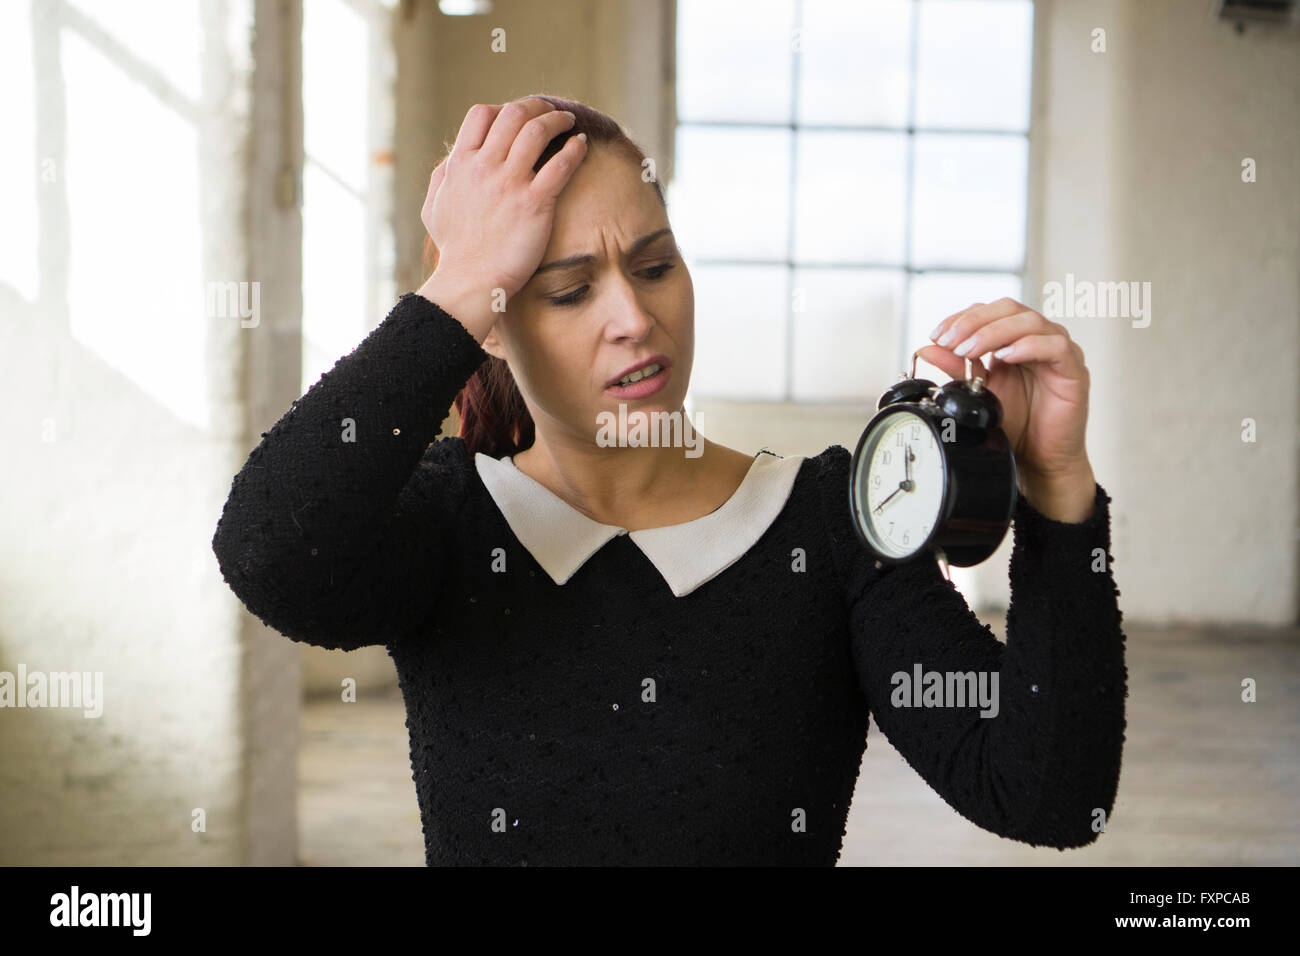 Annoyed woman looking at alarm clock - Stock Image